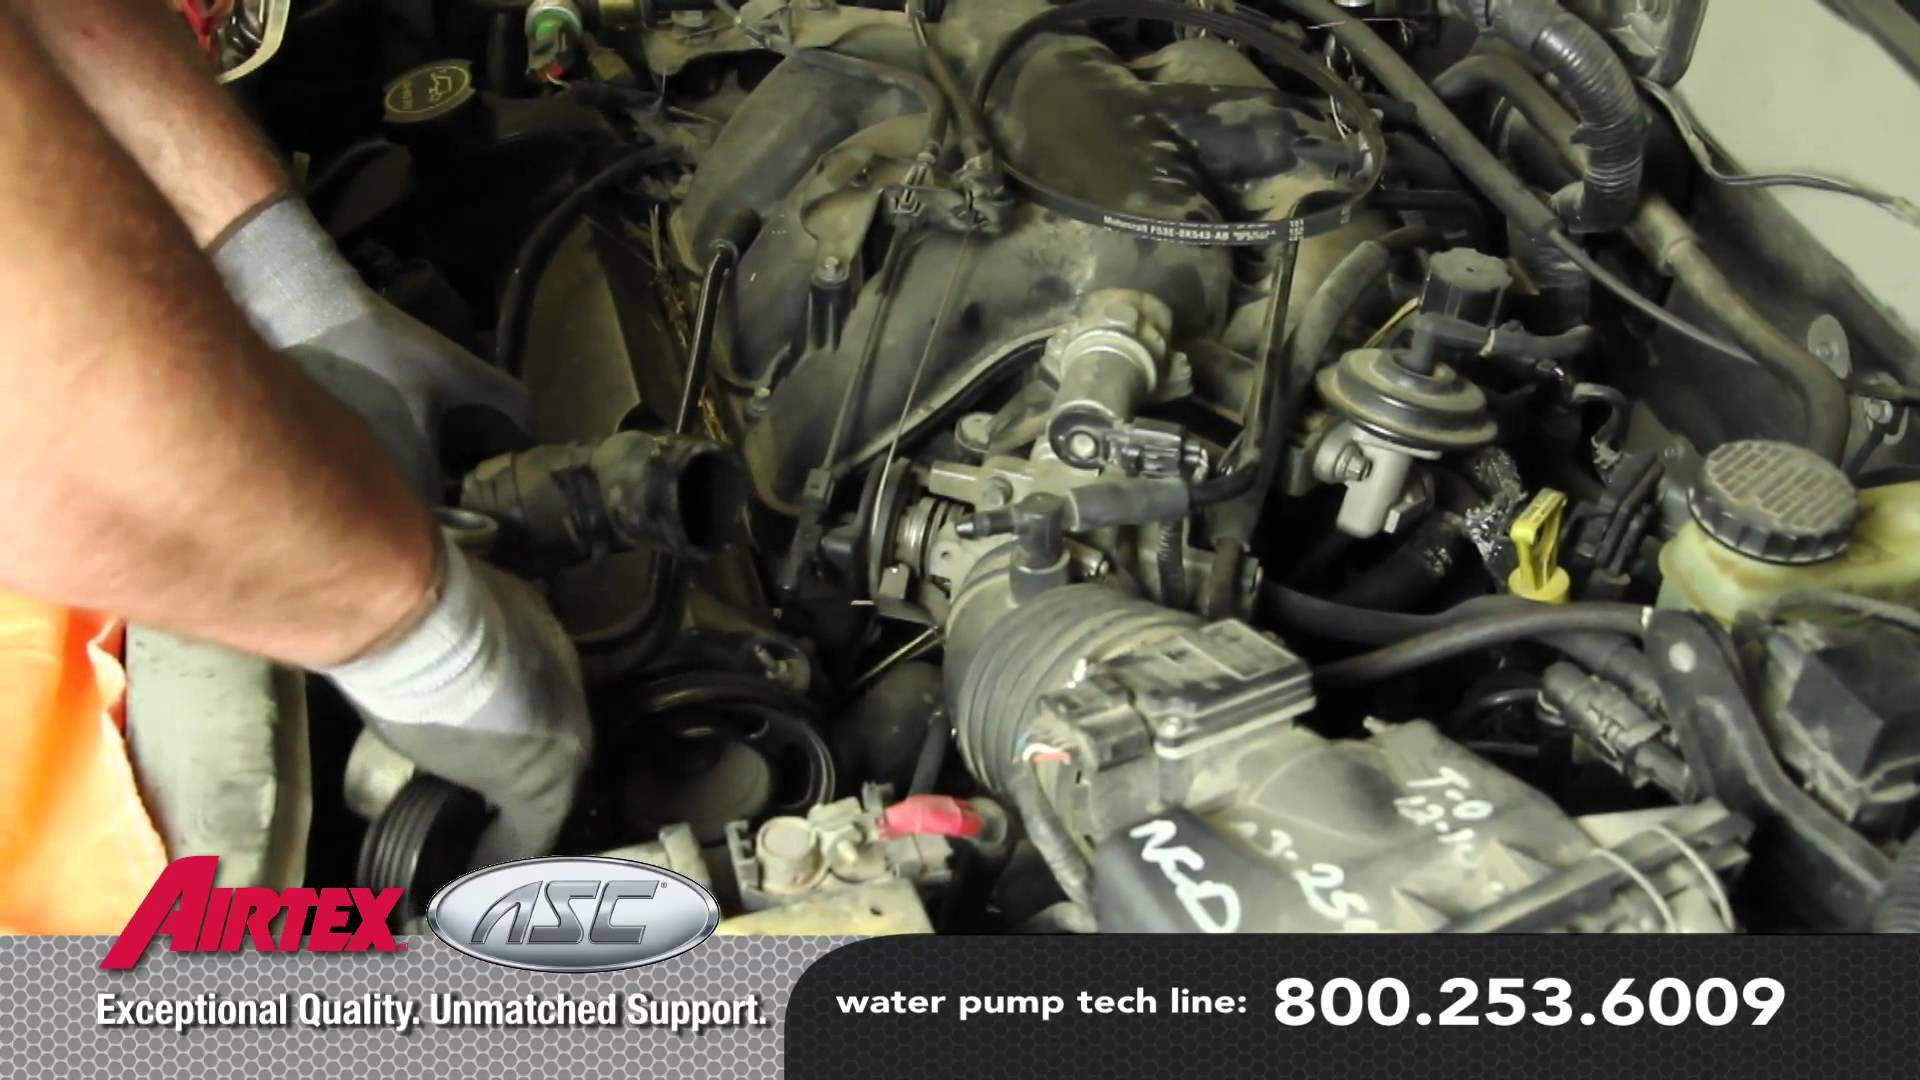 2000 Mercury Cougar Engine Diagram Serpentine Belt Replacement Ford Contour How To Install A Water Pump 3 0l V6 Wp